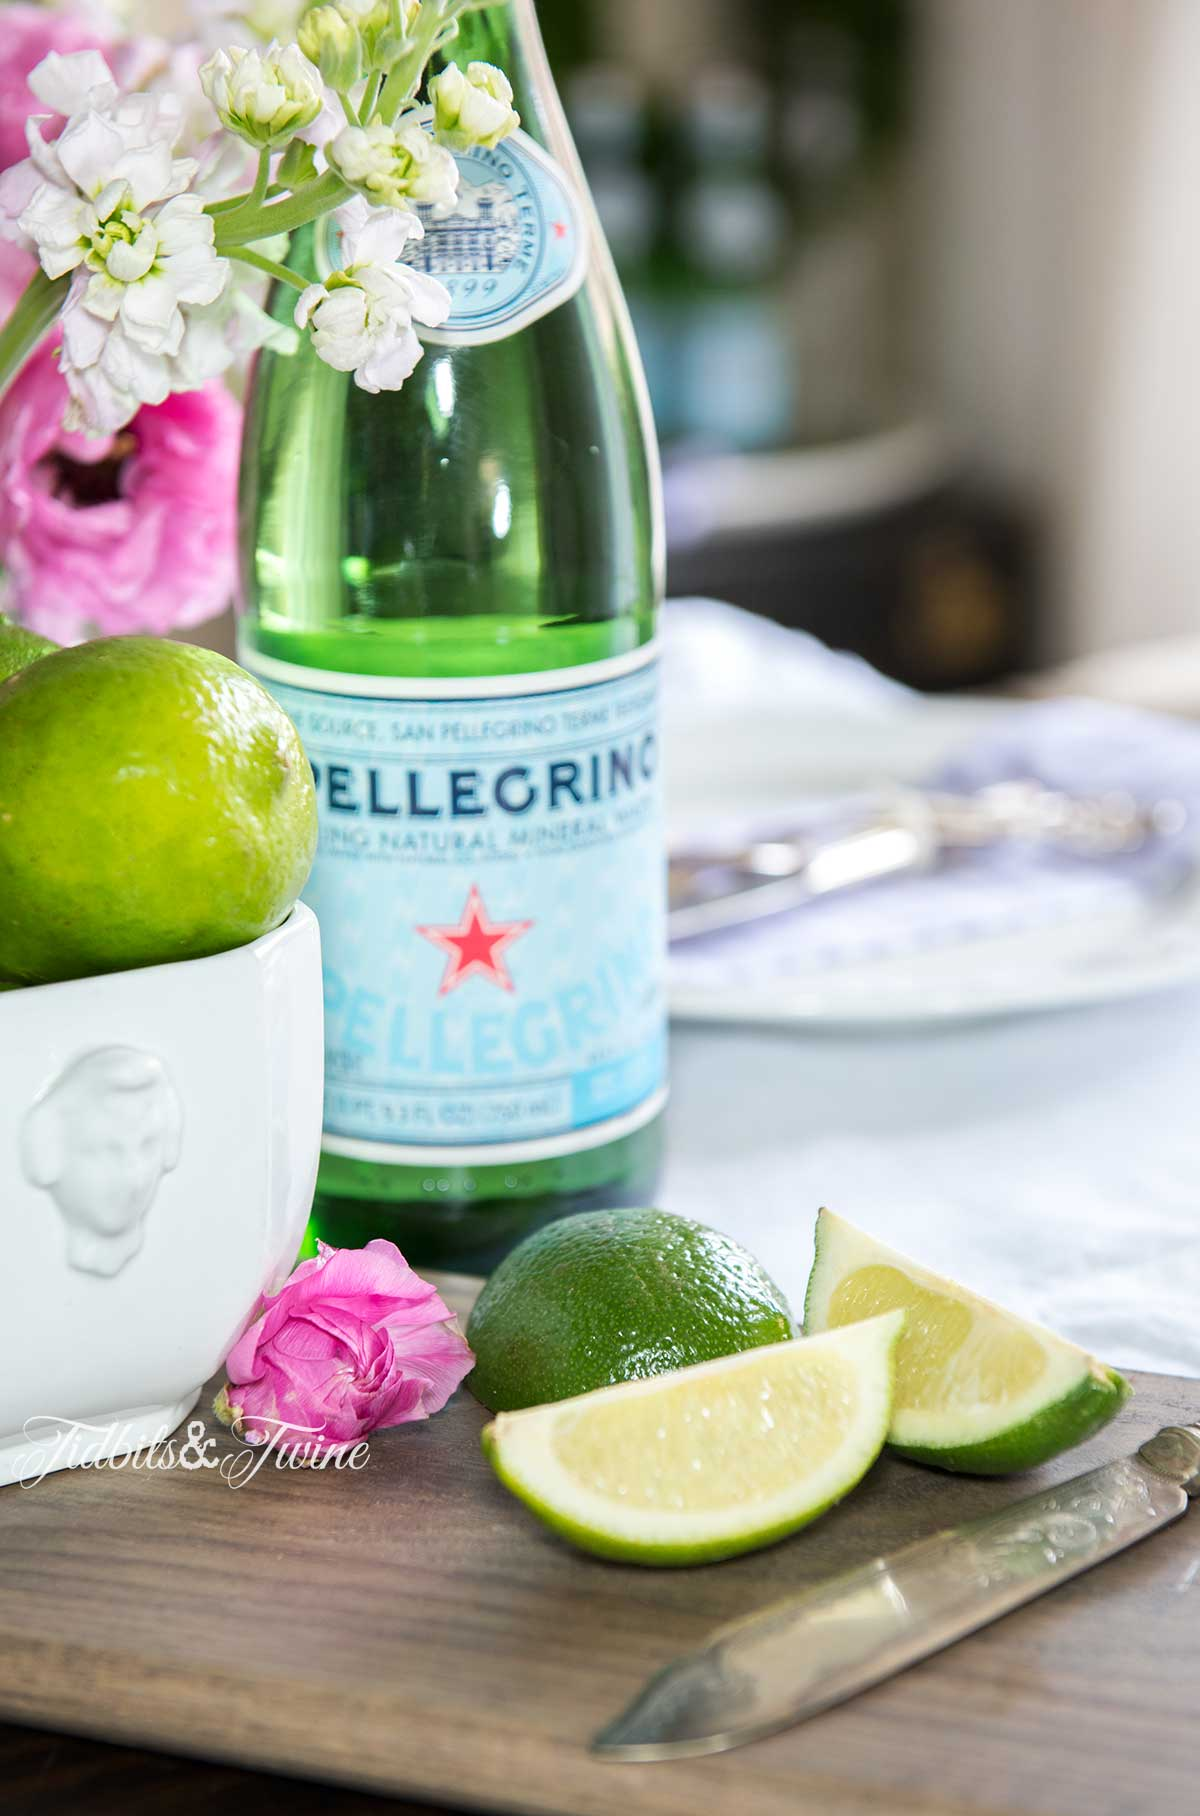 closeup of cut limes on board next to ironstone bowl of limes with pellagrino and pink flowers